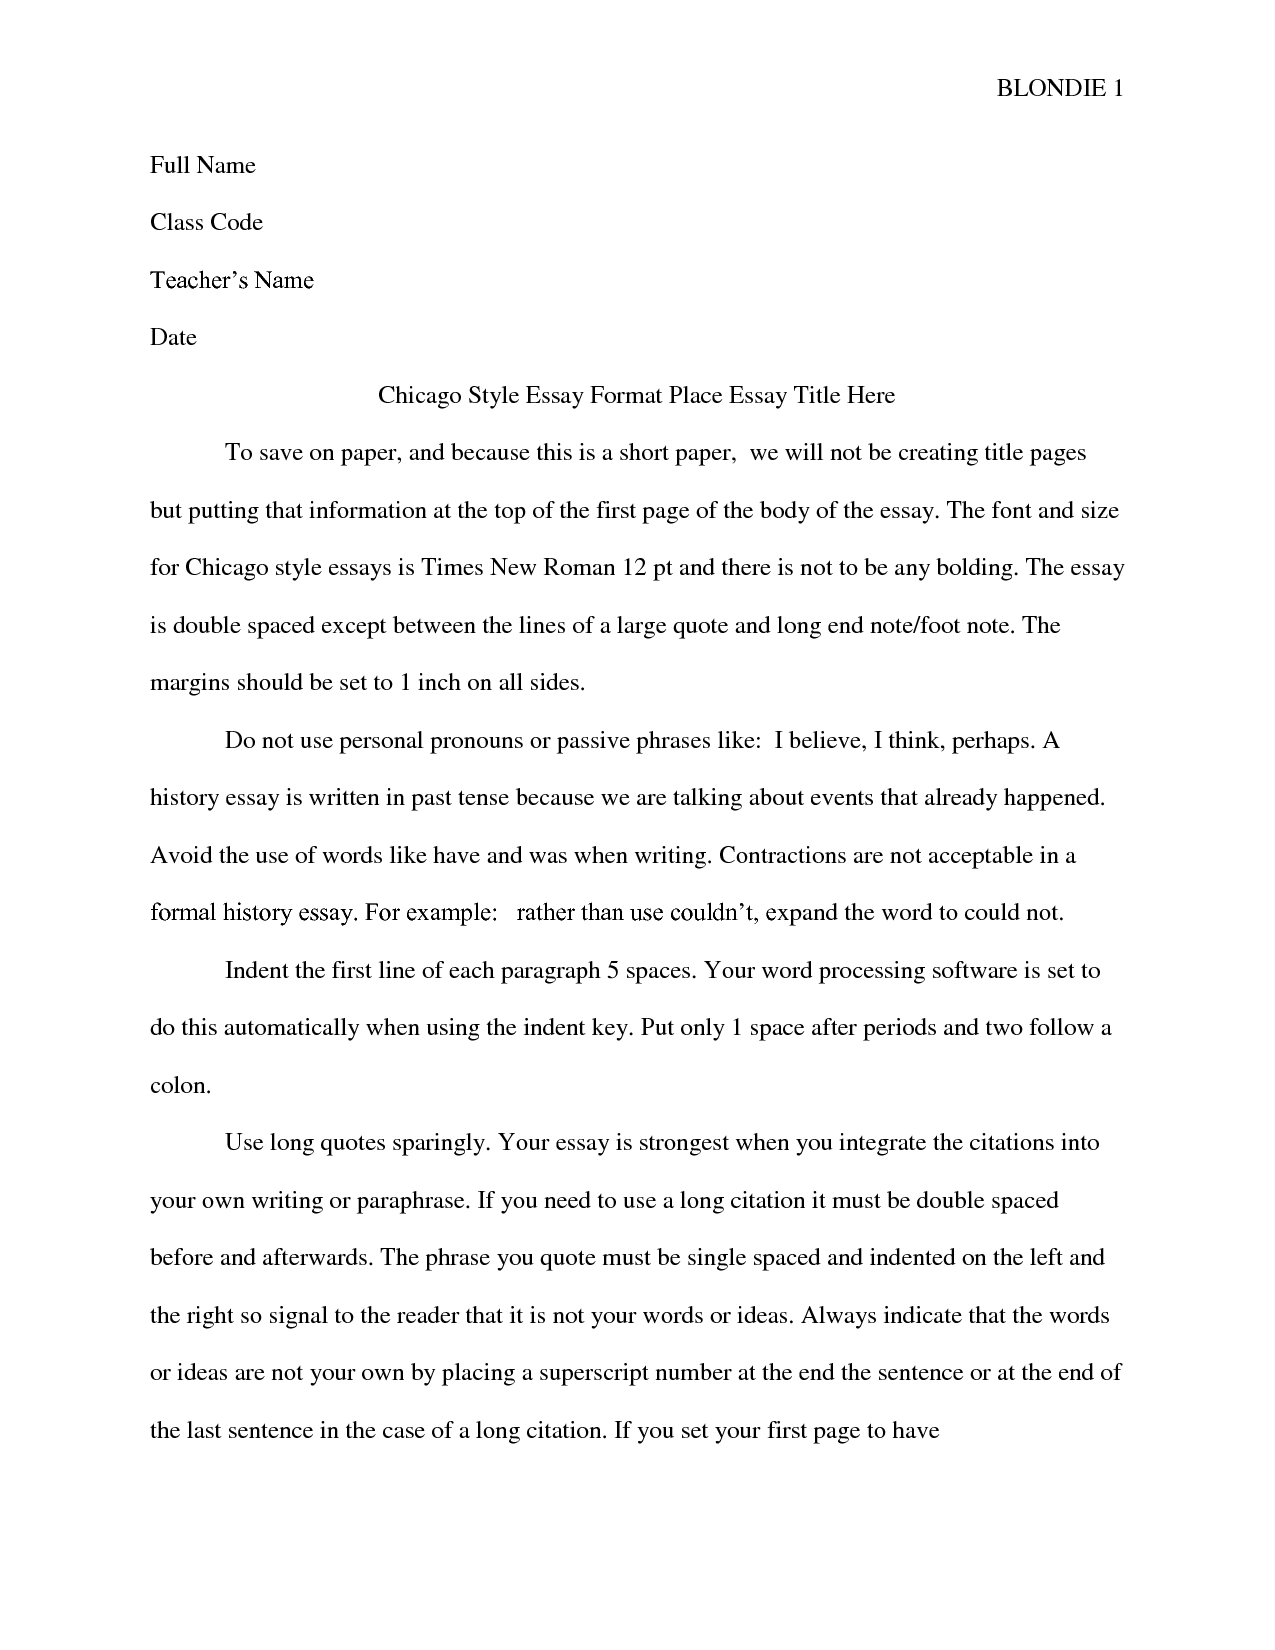 021 Chicago Essay Format Free Exquisite Turabian Style Without Title Page Template Shocking Heading University Of Full